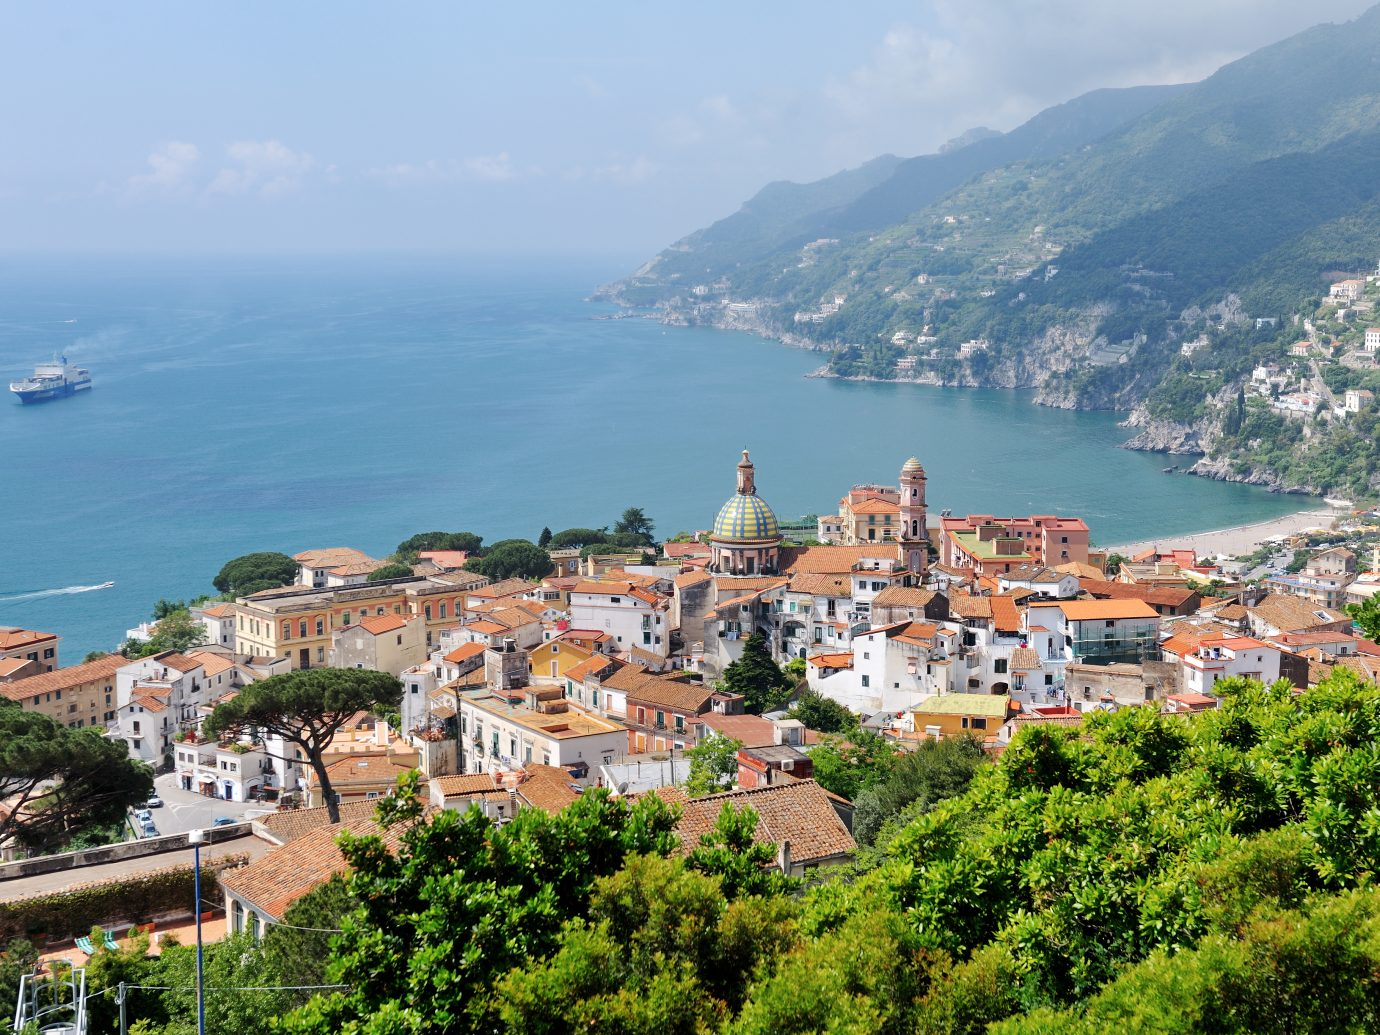 Panoramic view of Vietri sul Mare, the first town on the Amalfi Coast